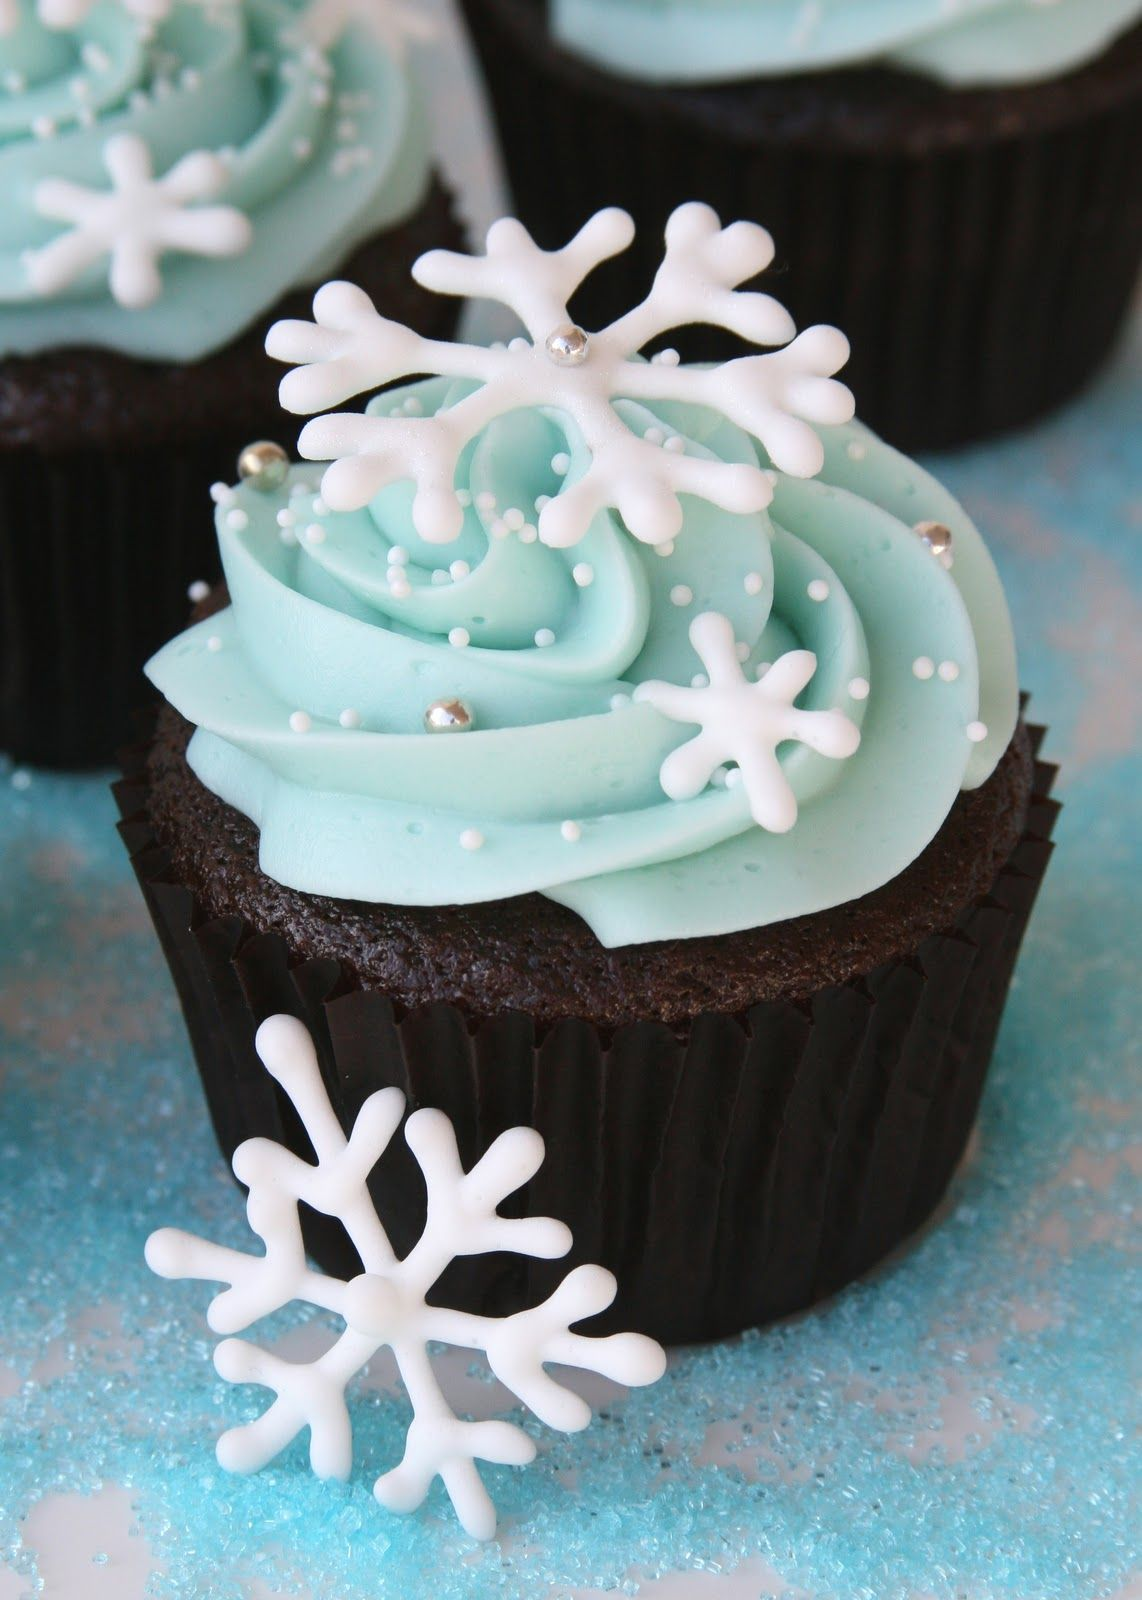 glorious treats snowflake cupcakes with instructions on how to make the snowflakes